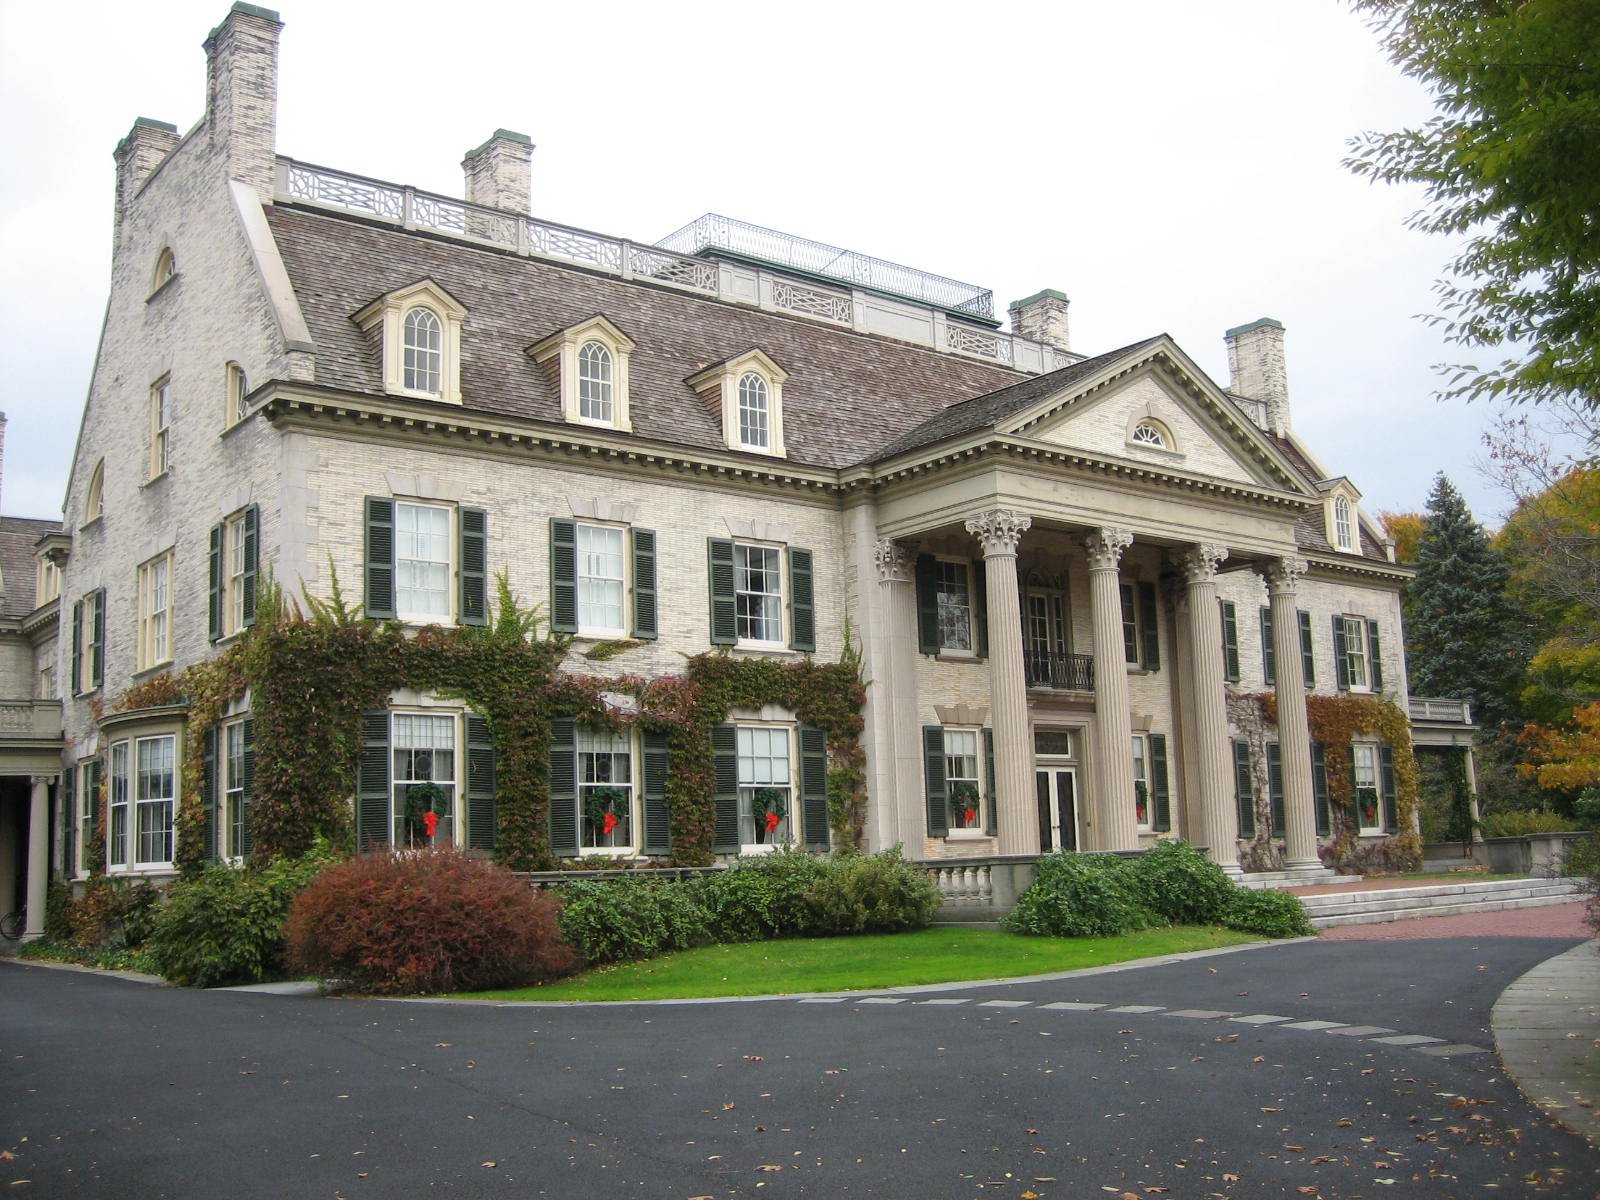 The George Eastman Mansion was built in 1905 and is a National Historic Landmark.